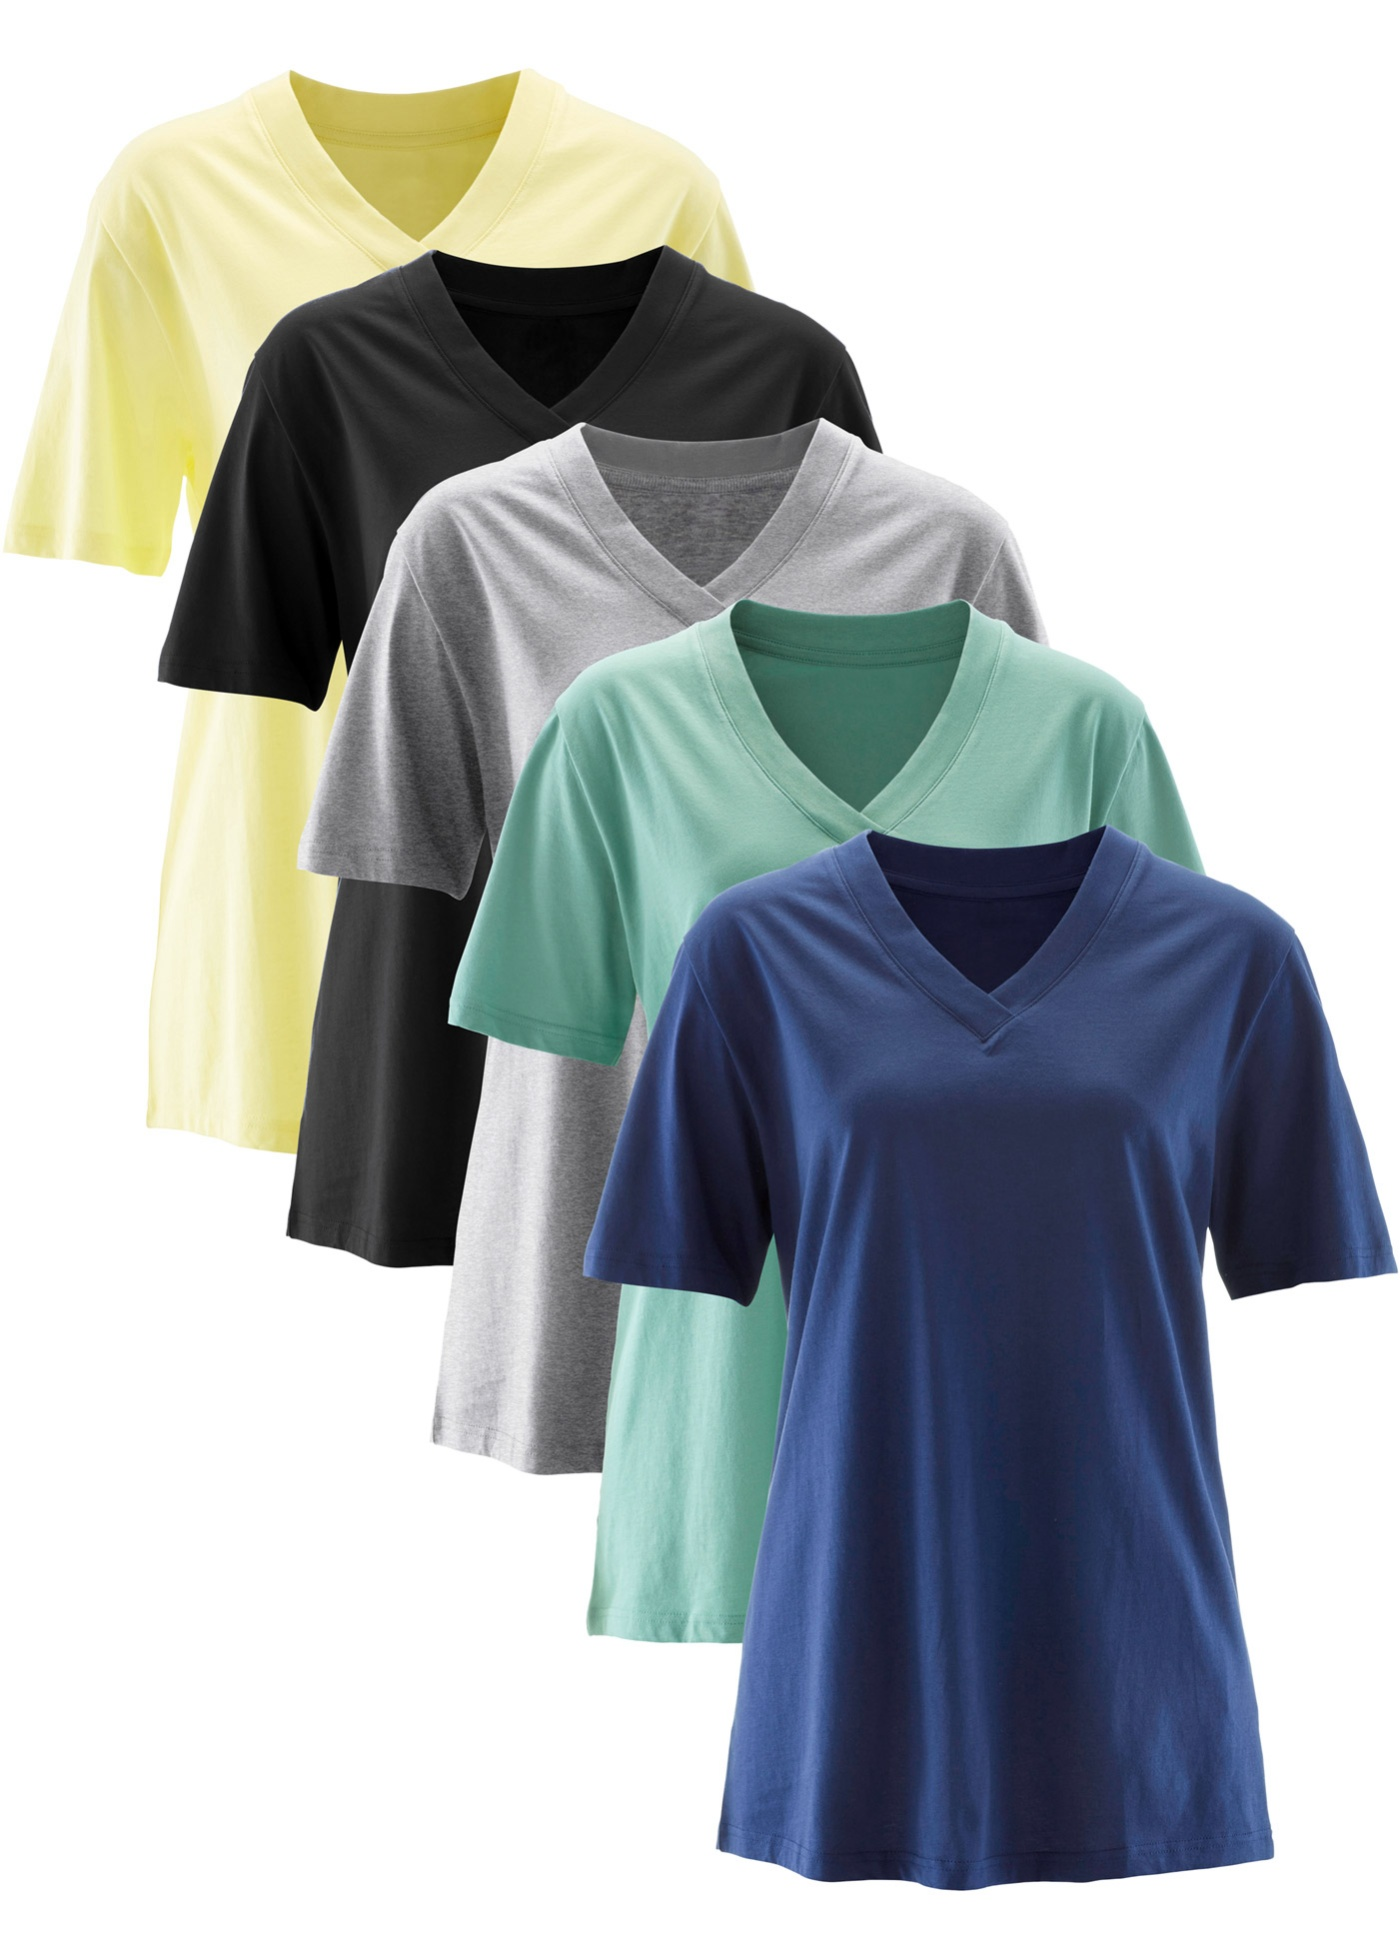 Lot de 5 t-shirts avec col en V